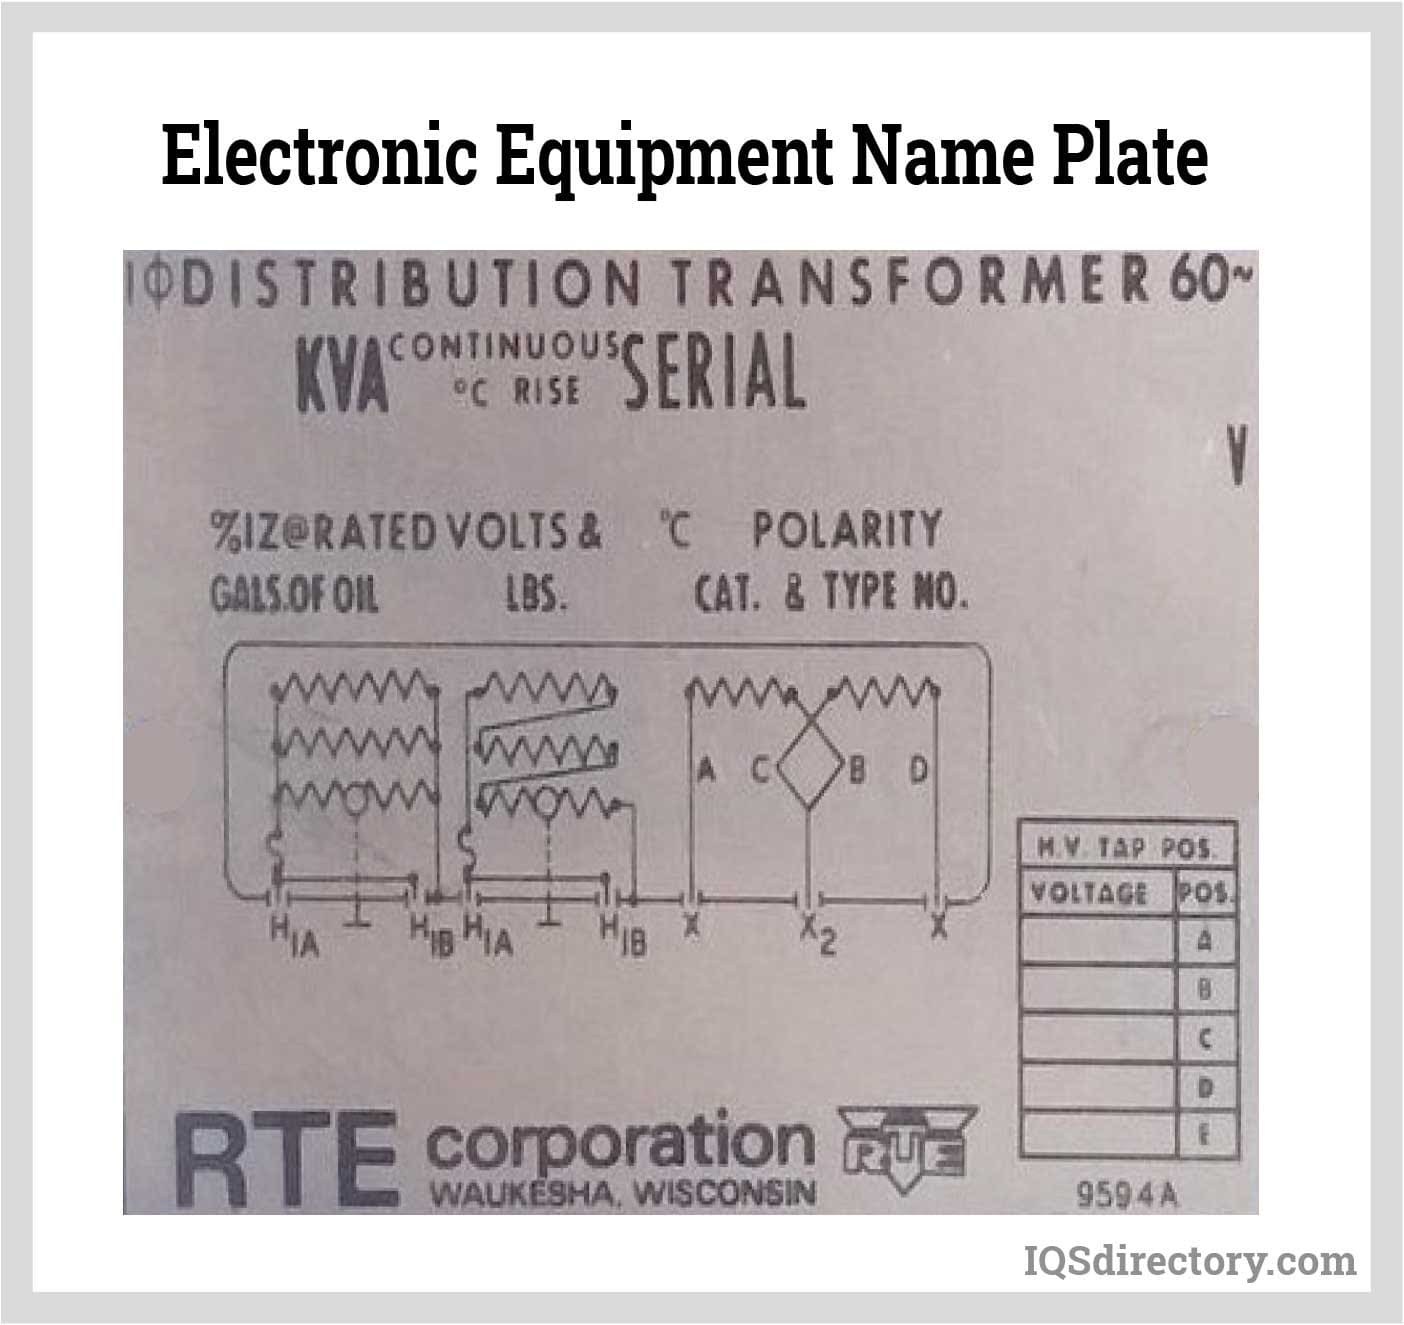 Electronic Equipment Name Plate